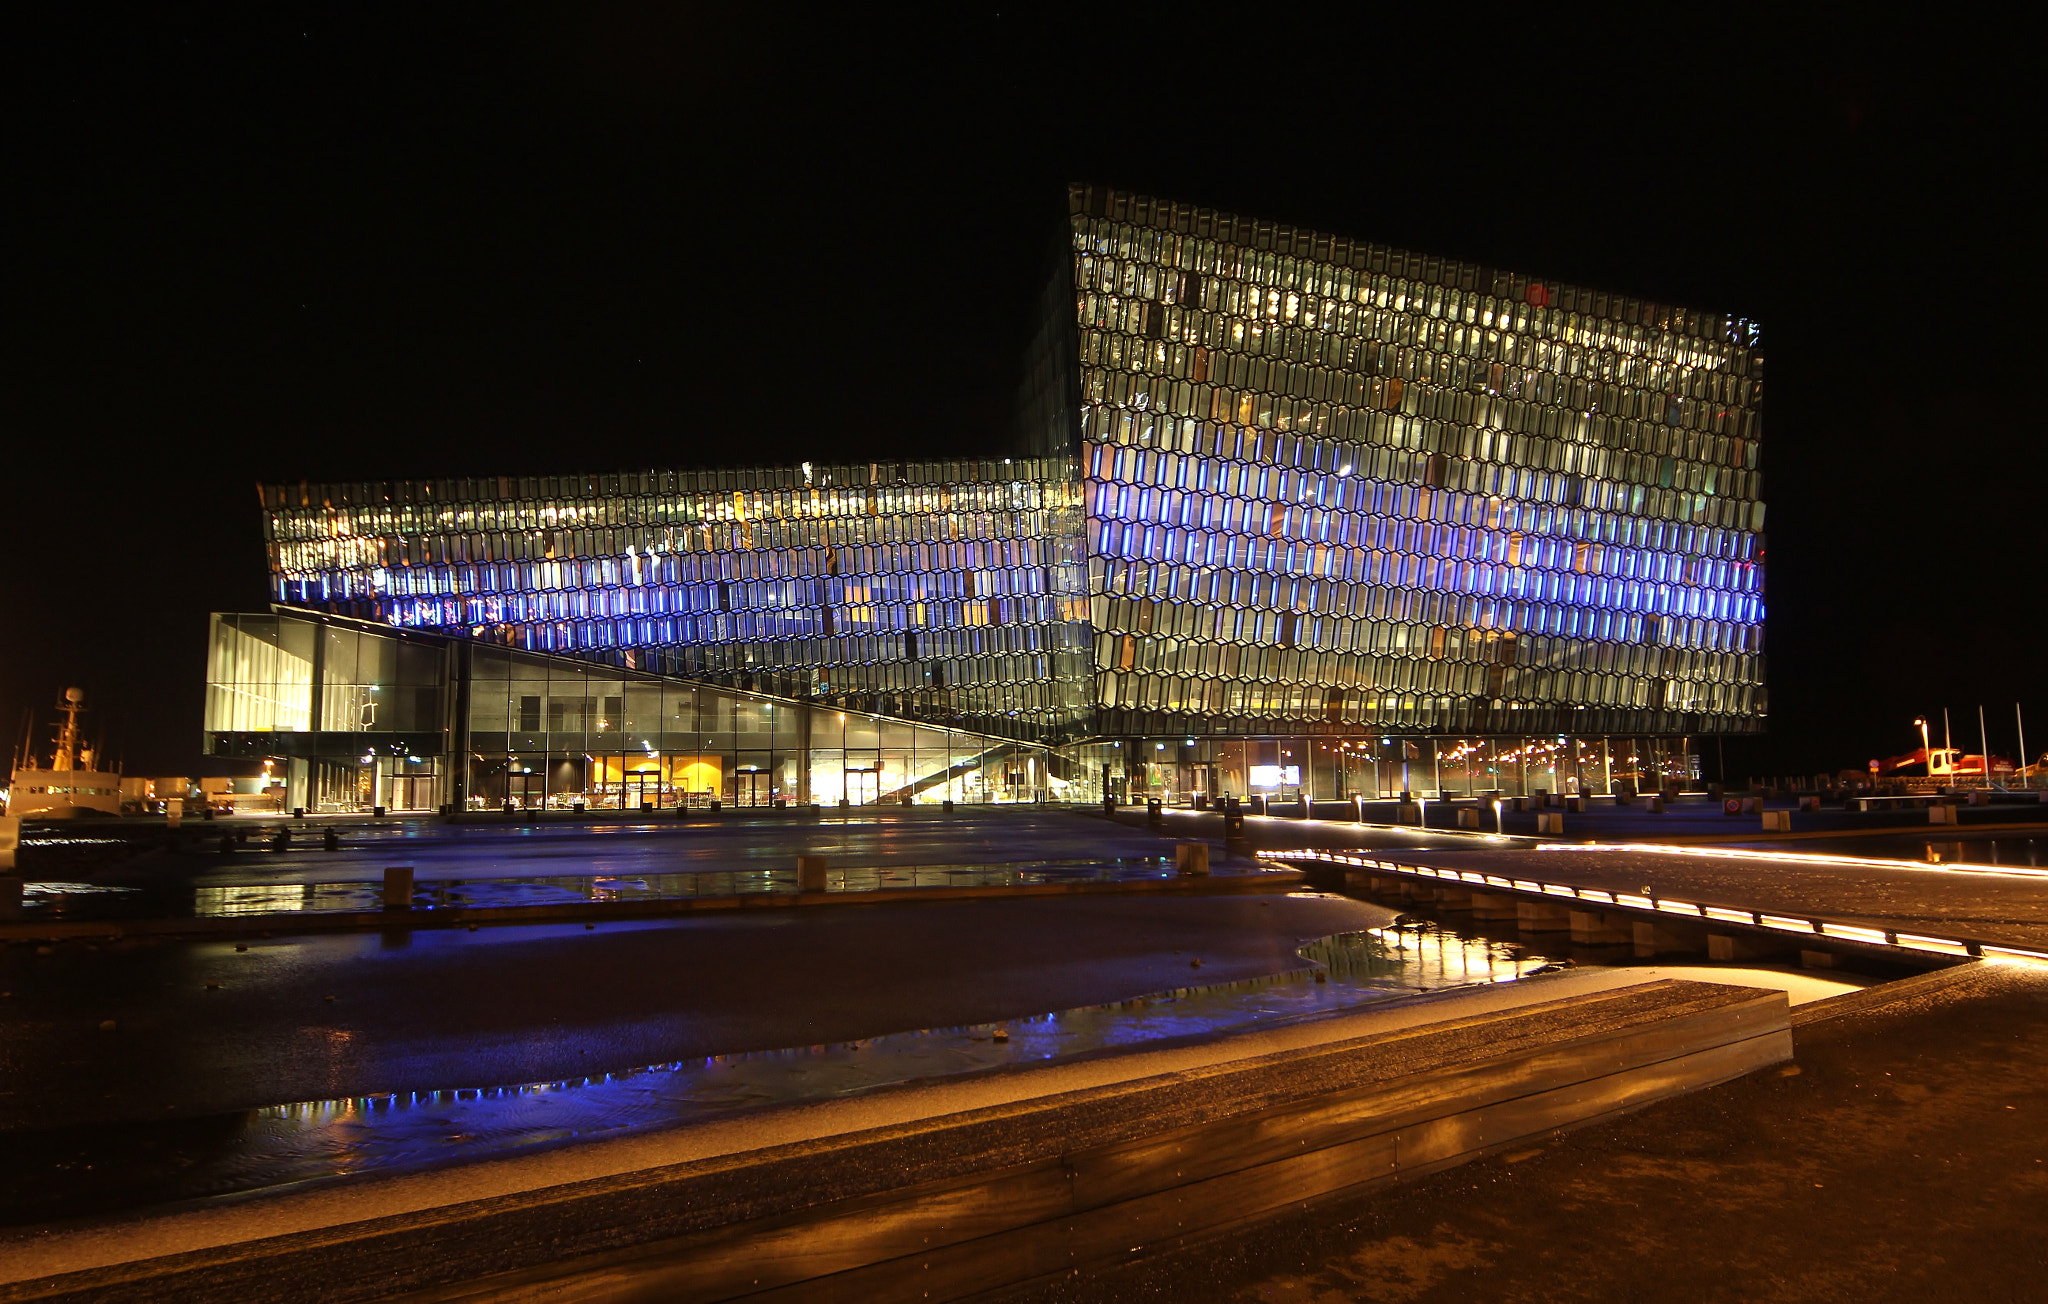 Photograph Harpa by Nora 80 on 500px